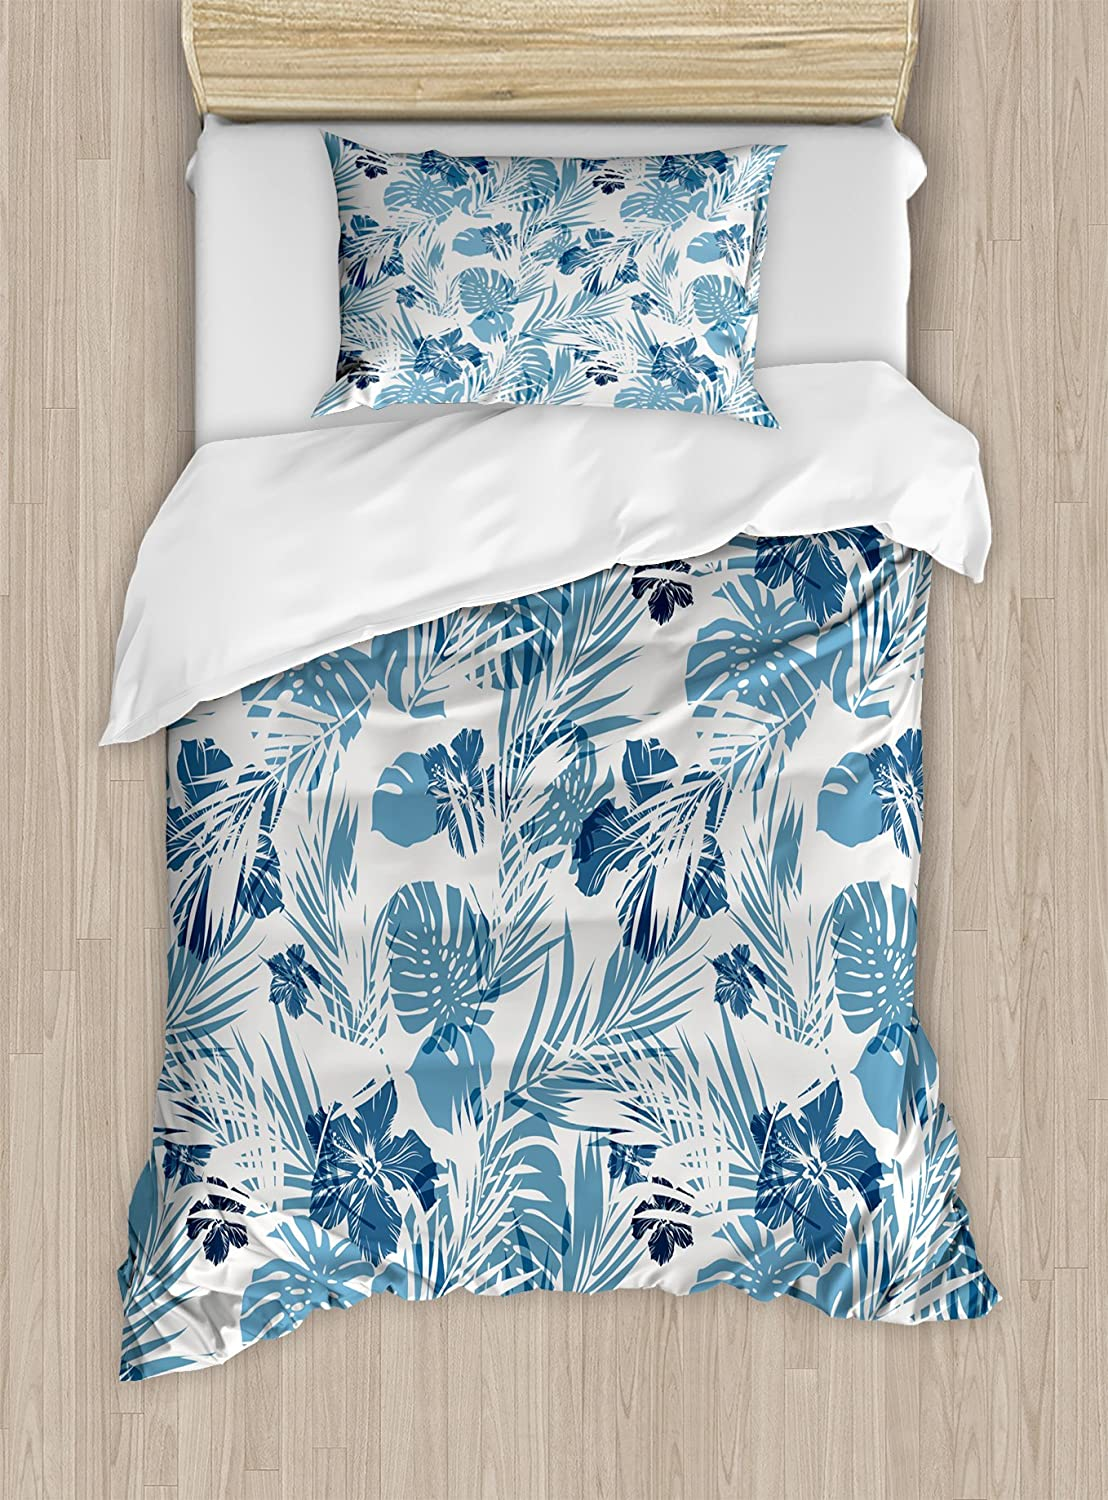 Ambesonne Leaf Duvet Cover Set, Island Ocean Beach Sea Inspired Hawaiian Flowers Palm Tree Leaves Art Print, Decorative 2 Piece Bedding Set with 1 Pillow Sham, Twin Size, Blue Lilac